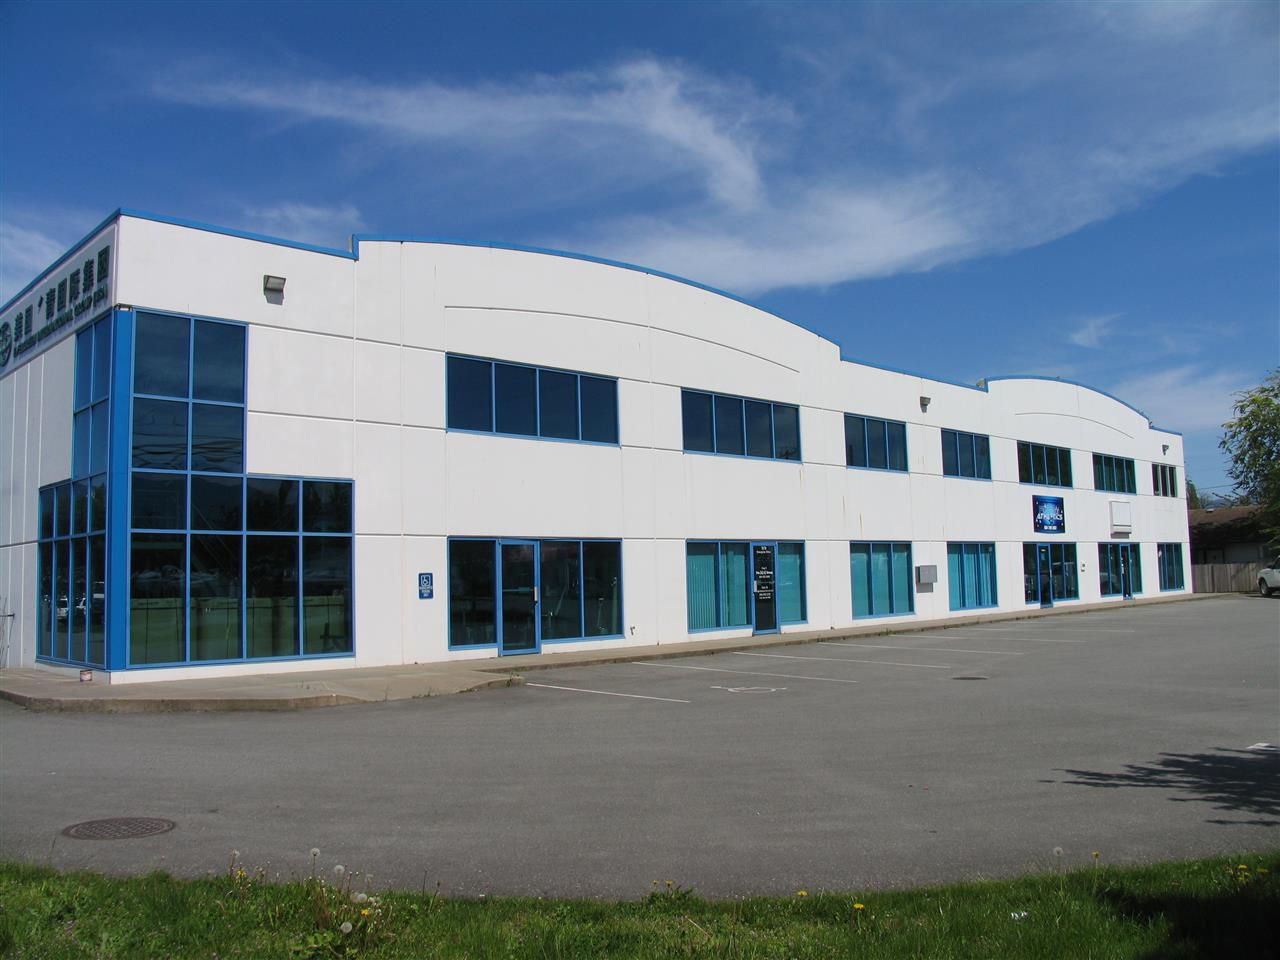 Main Photo: 3 7870 ENTERPRISE Drive in Chilliwack: Chilliwack Yale Rd West Commercial for lease : MLS®# C8006806